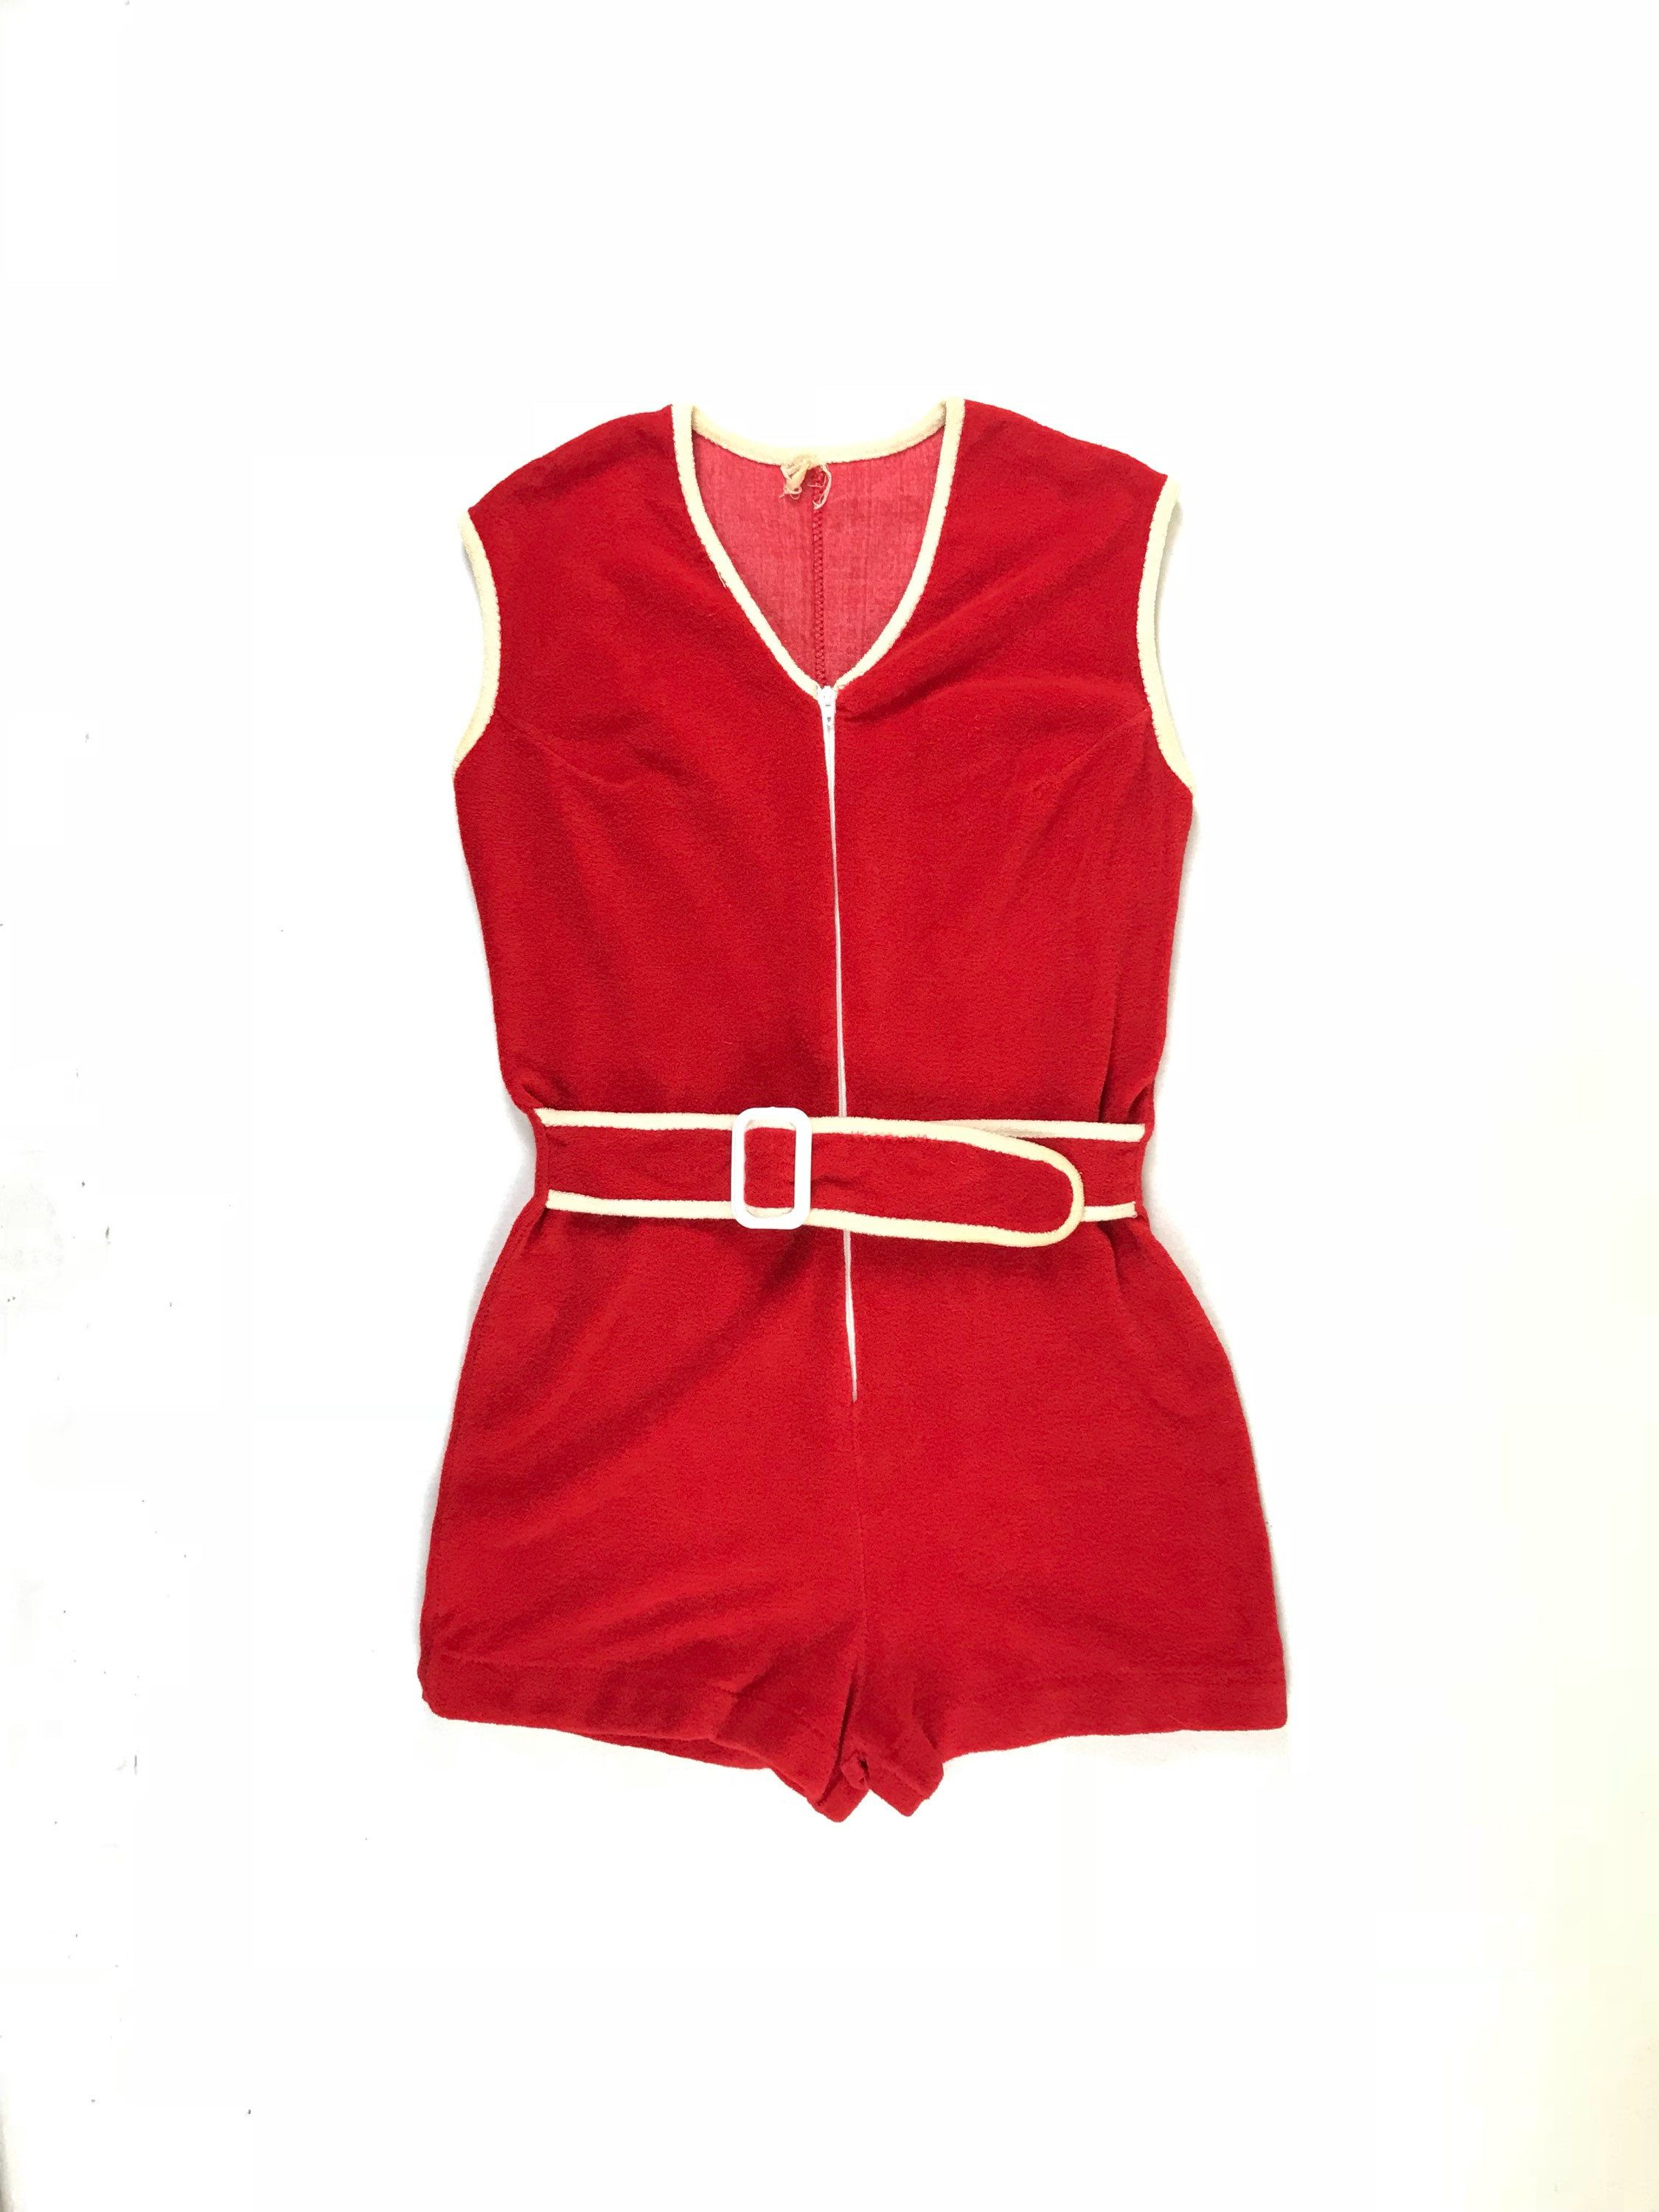 8a8efbdc2a 1950s 60s mod romper vintage cherry red terry cloth belted romper 1960s hot  pants 50s playsuit sleeveless zip front nautical romper 30s 40s